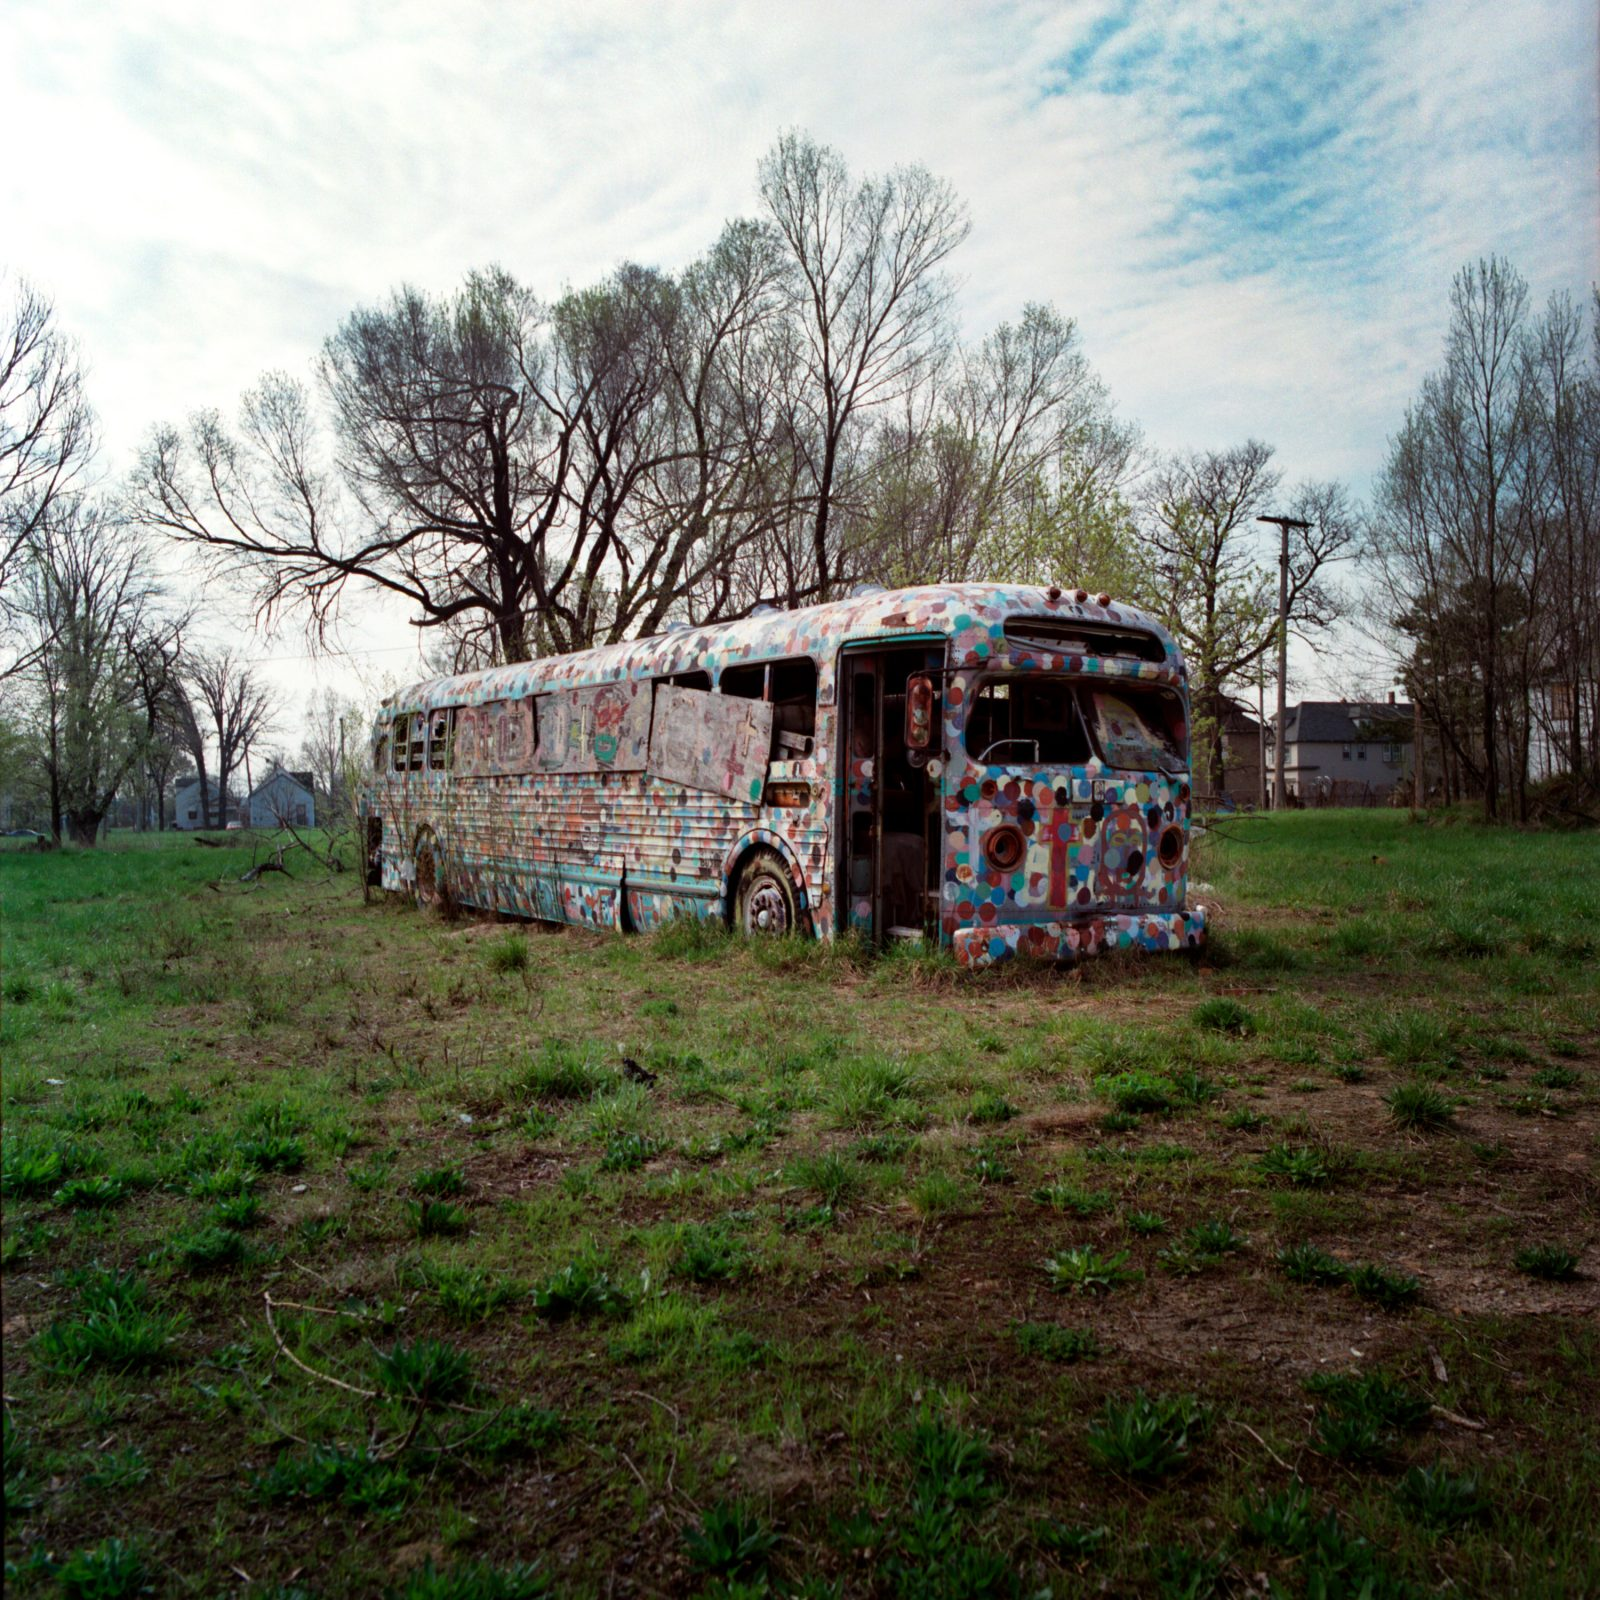 Tyree Guyton, Polka Dot bus. Detroit, Michigan.